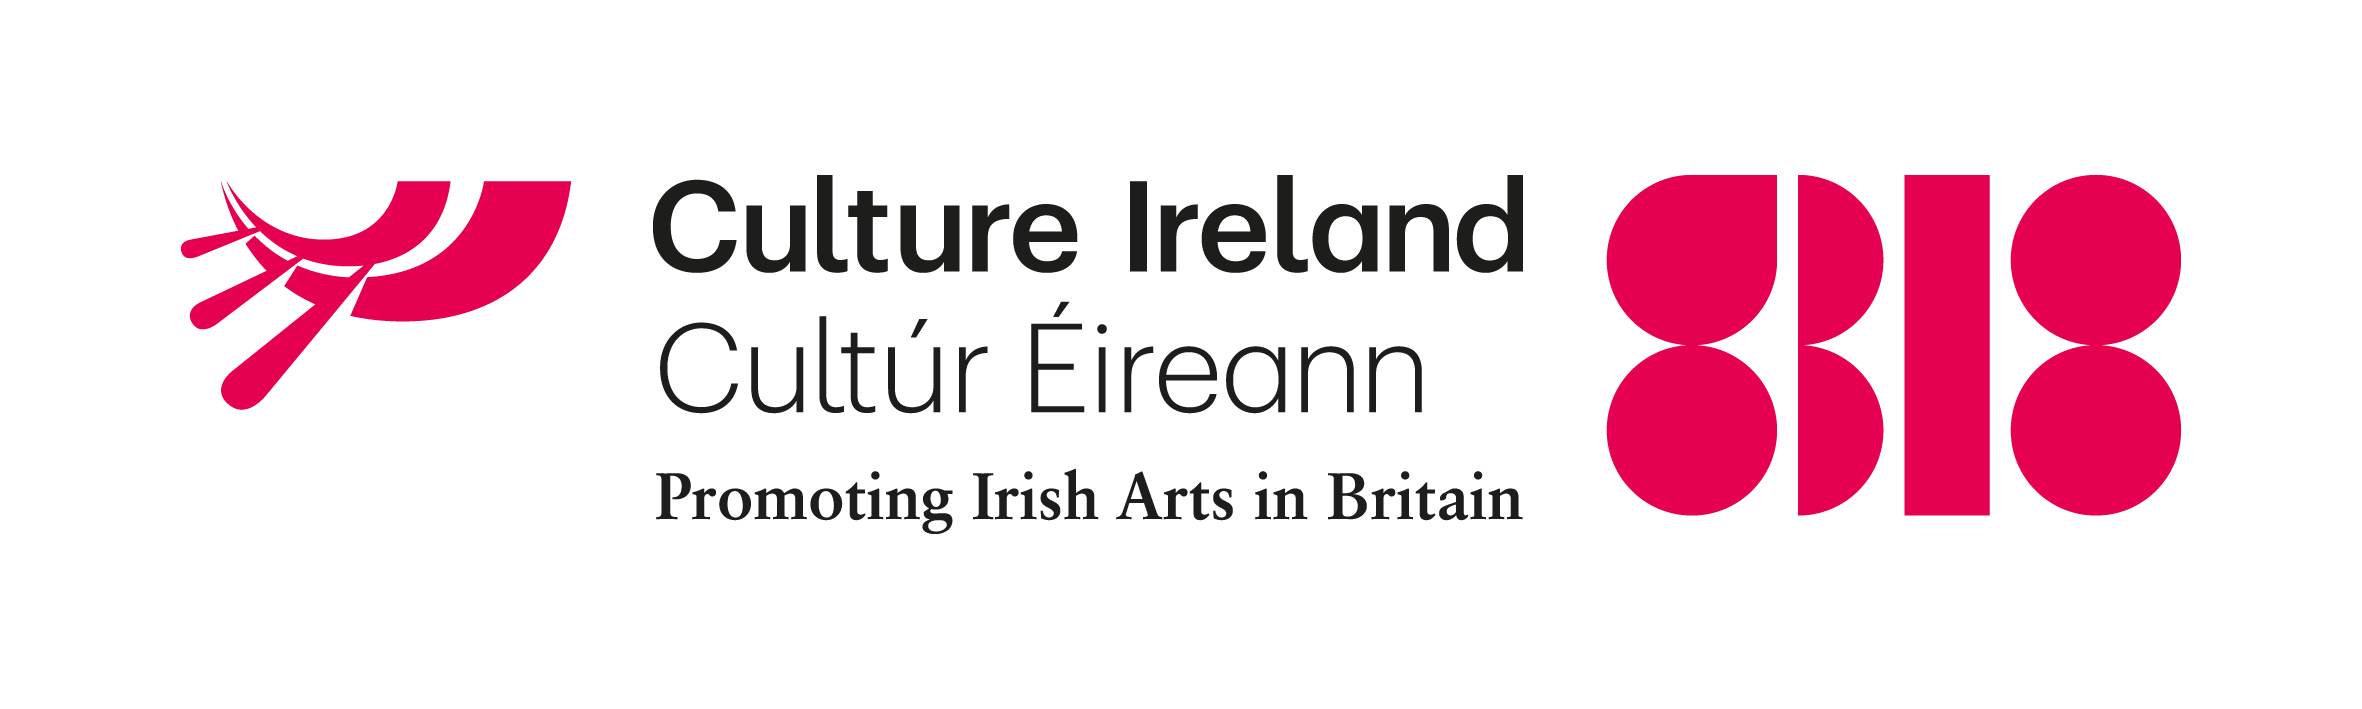 http://www.cultureireland.ie/GB18/event/engaging-places-collaborative-praxis-in-art-and-architecture